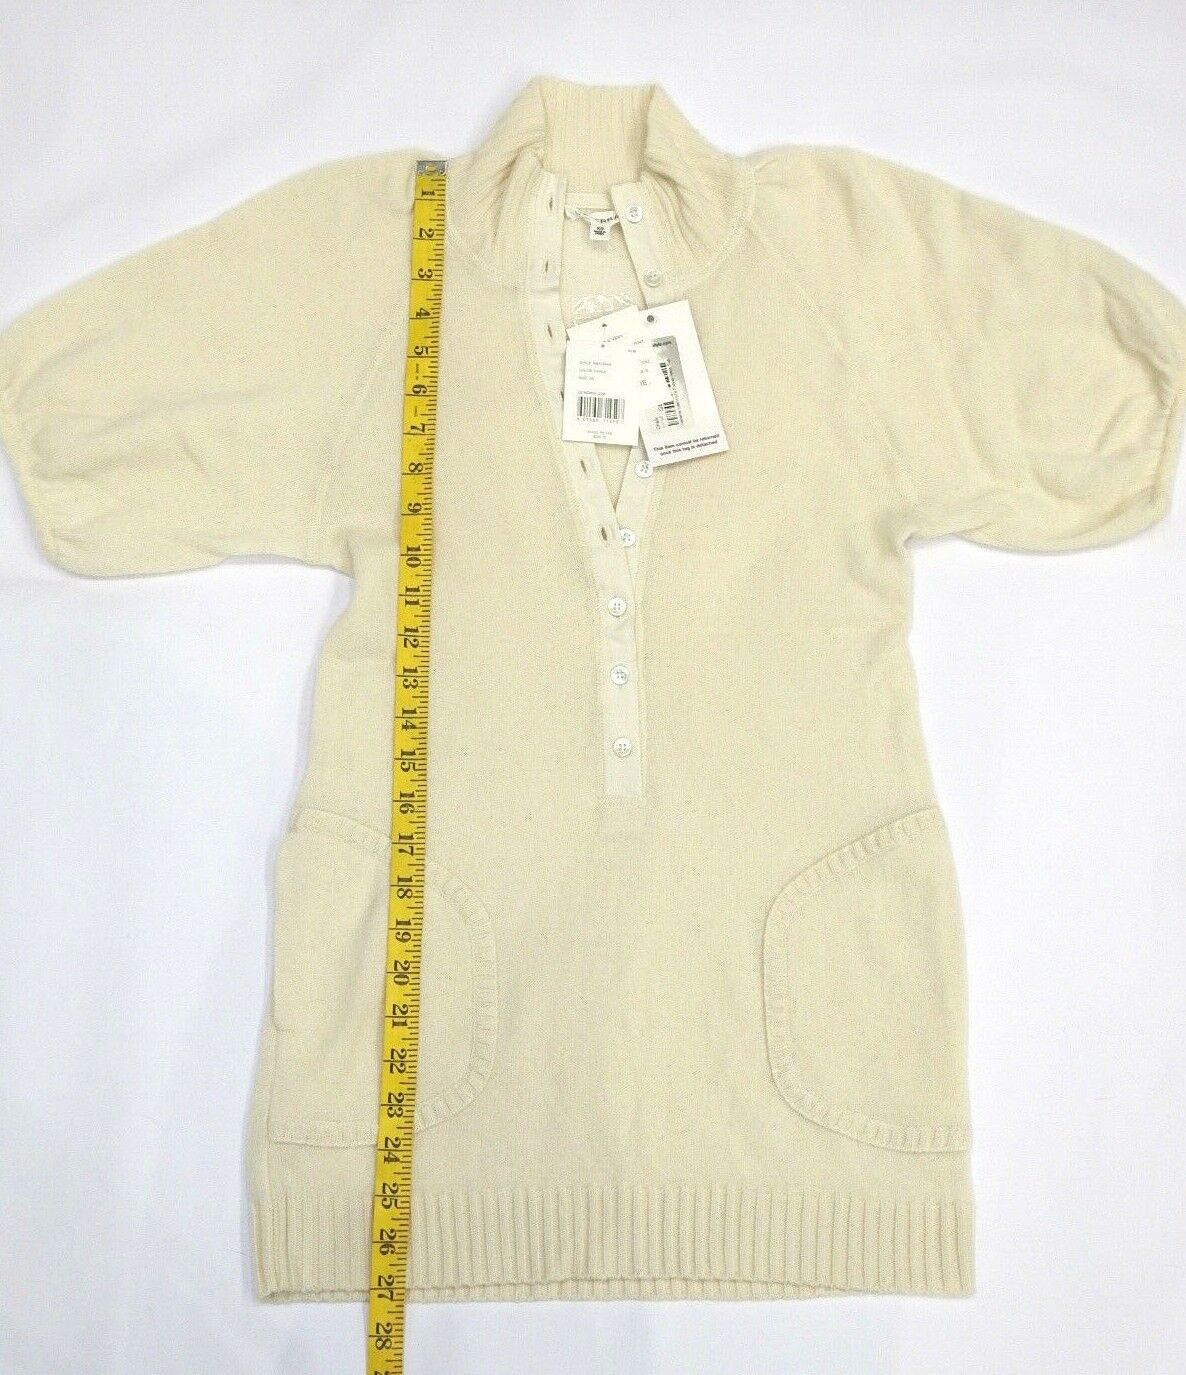 NEW Generra 100% Cashmere Ivory Ivory Ivory Balloon Sleeve Top Tunic Sweater XS NWT  295 cadfb2